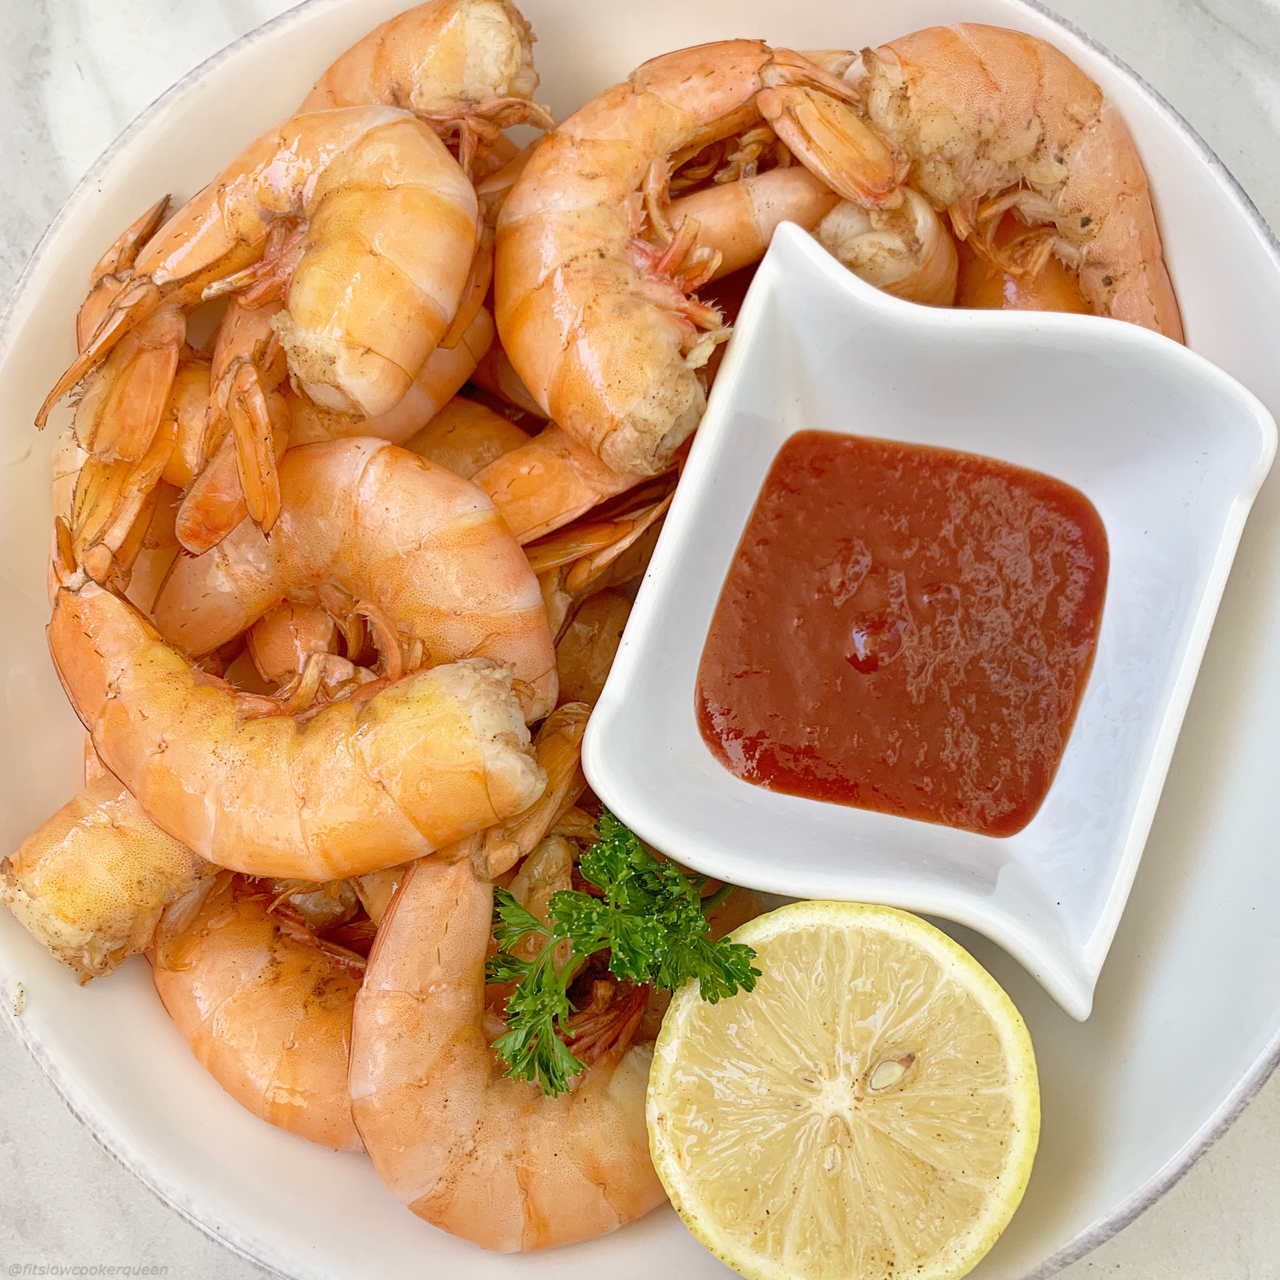 Peel and Eat shrimp are an easy, fun-to-eat shrimp dish. This slow cooker version uses a homemade Old Bay seasoning making healthy seasoned shrimp.